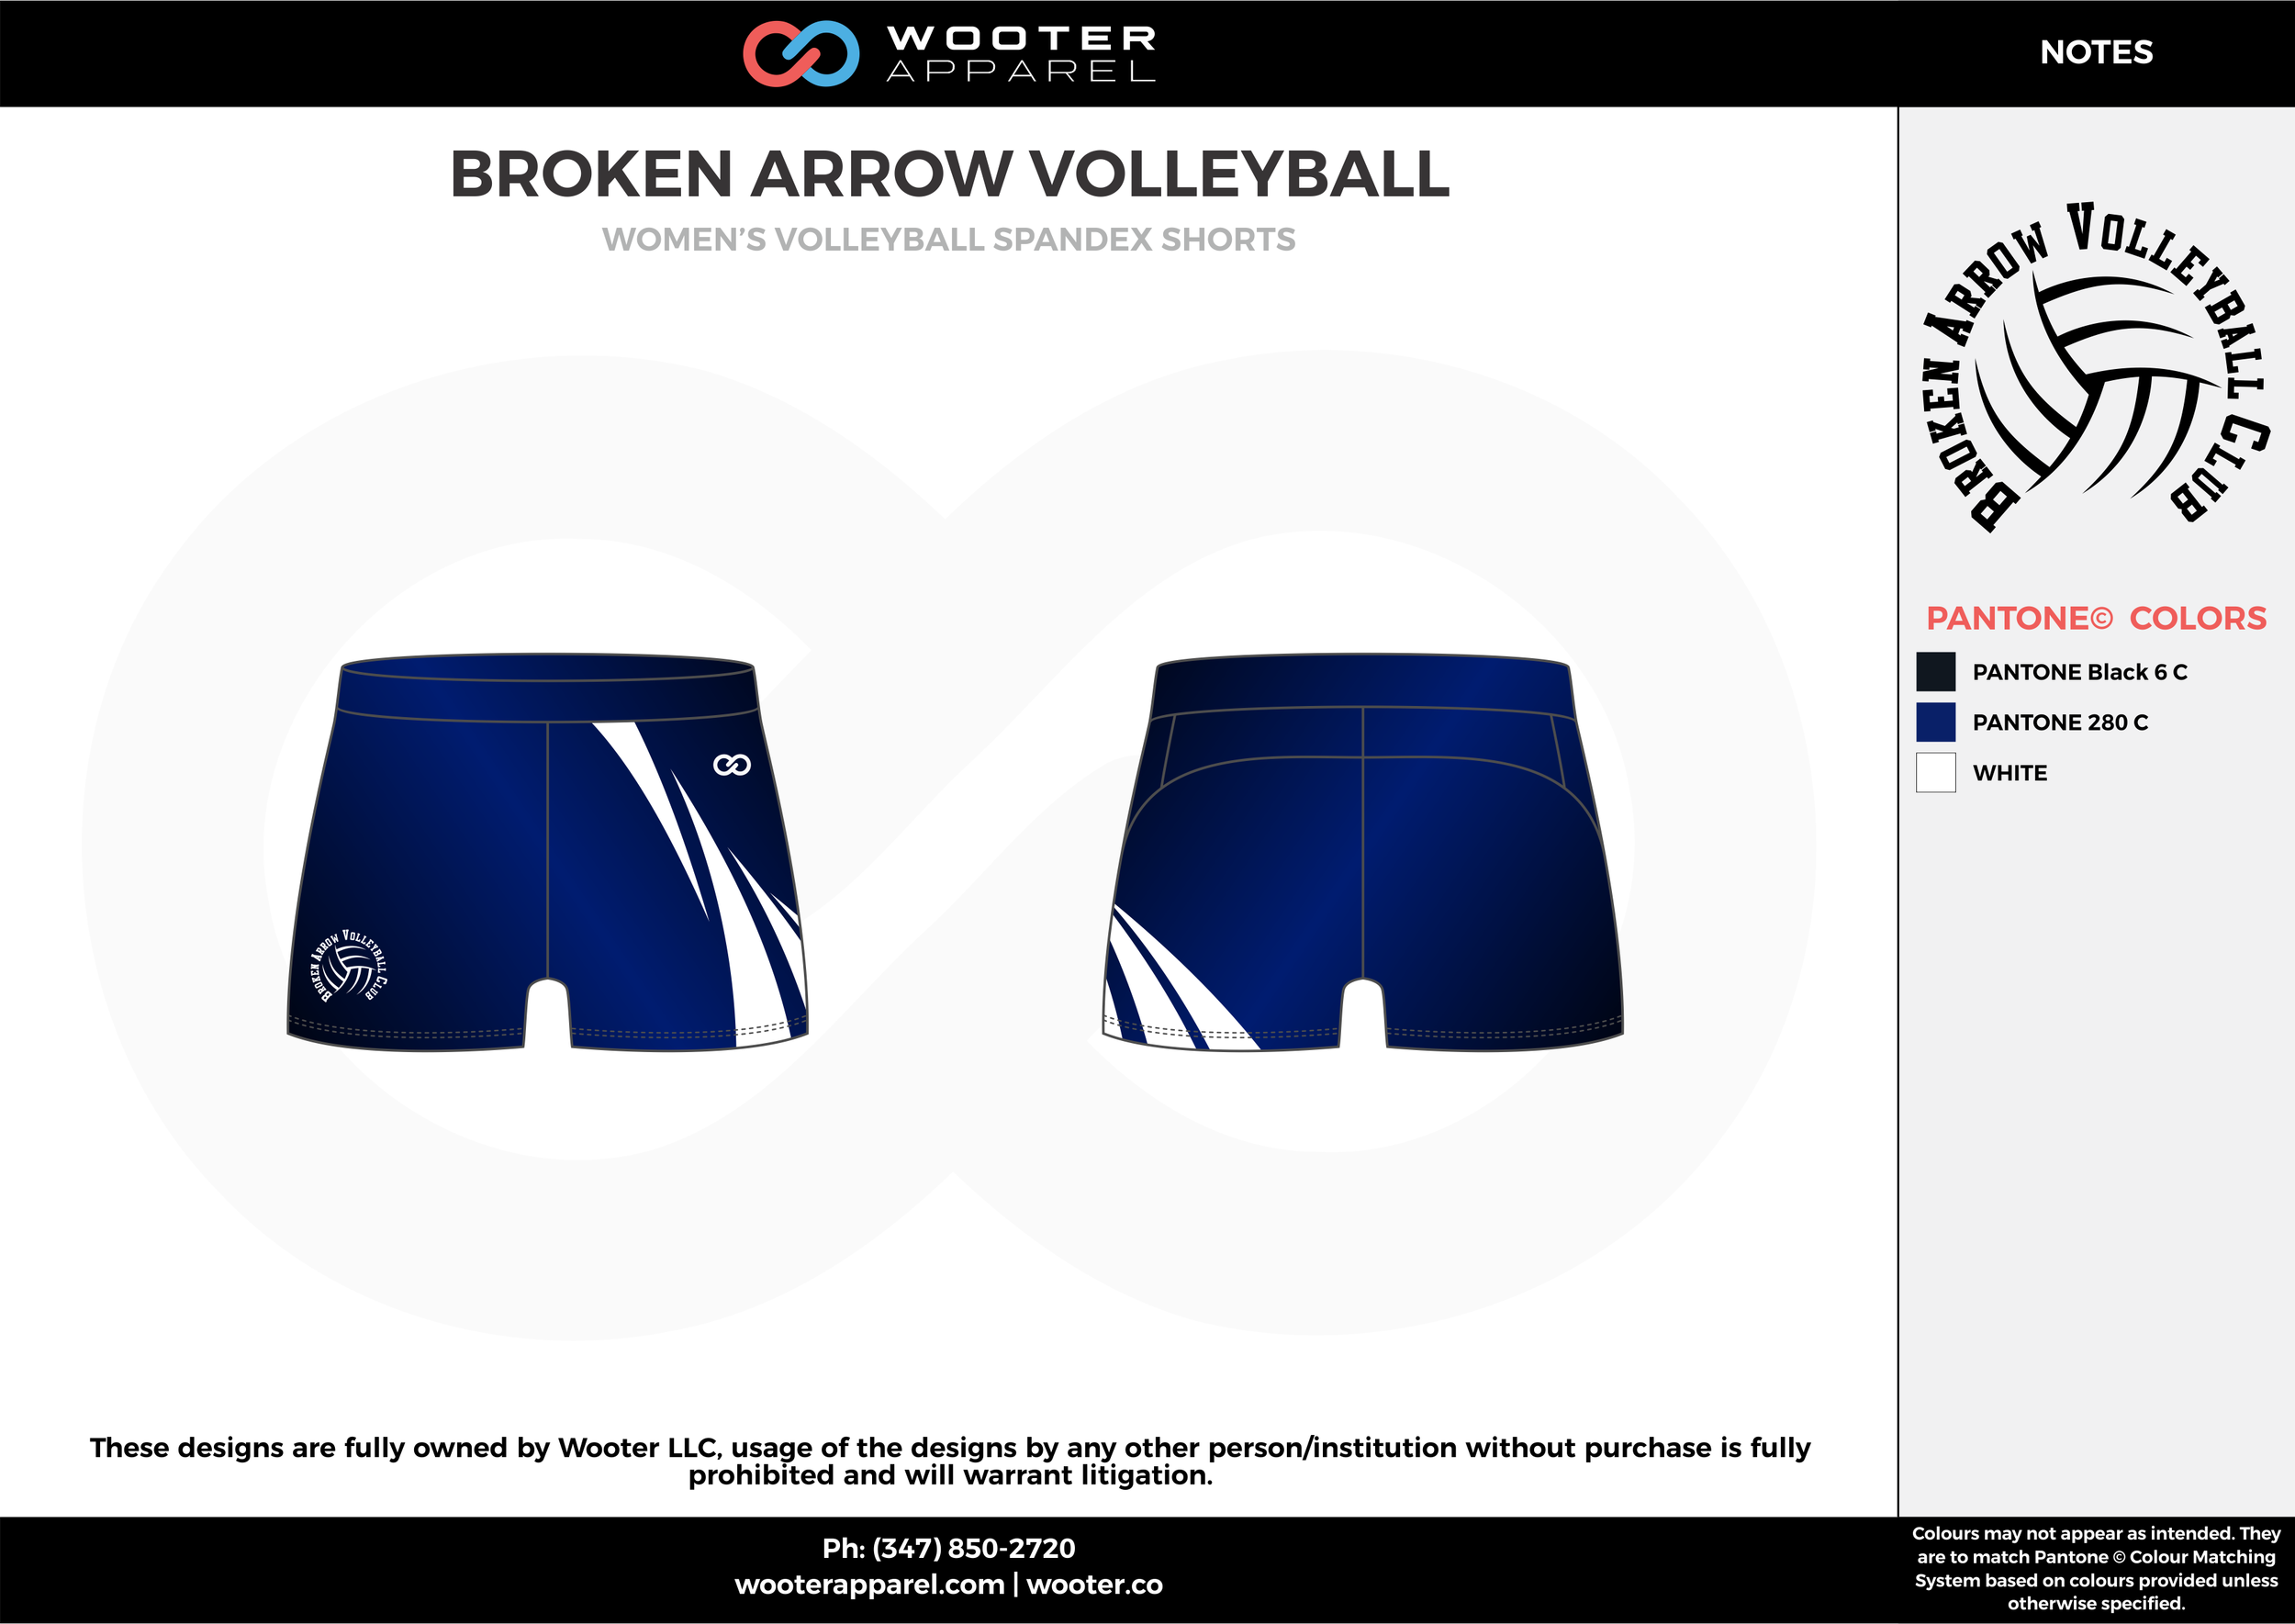 BROKEN ARROW VOLLEYBALL black blue white Volleyball Uniforms, Jerseys, Shorts